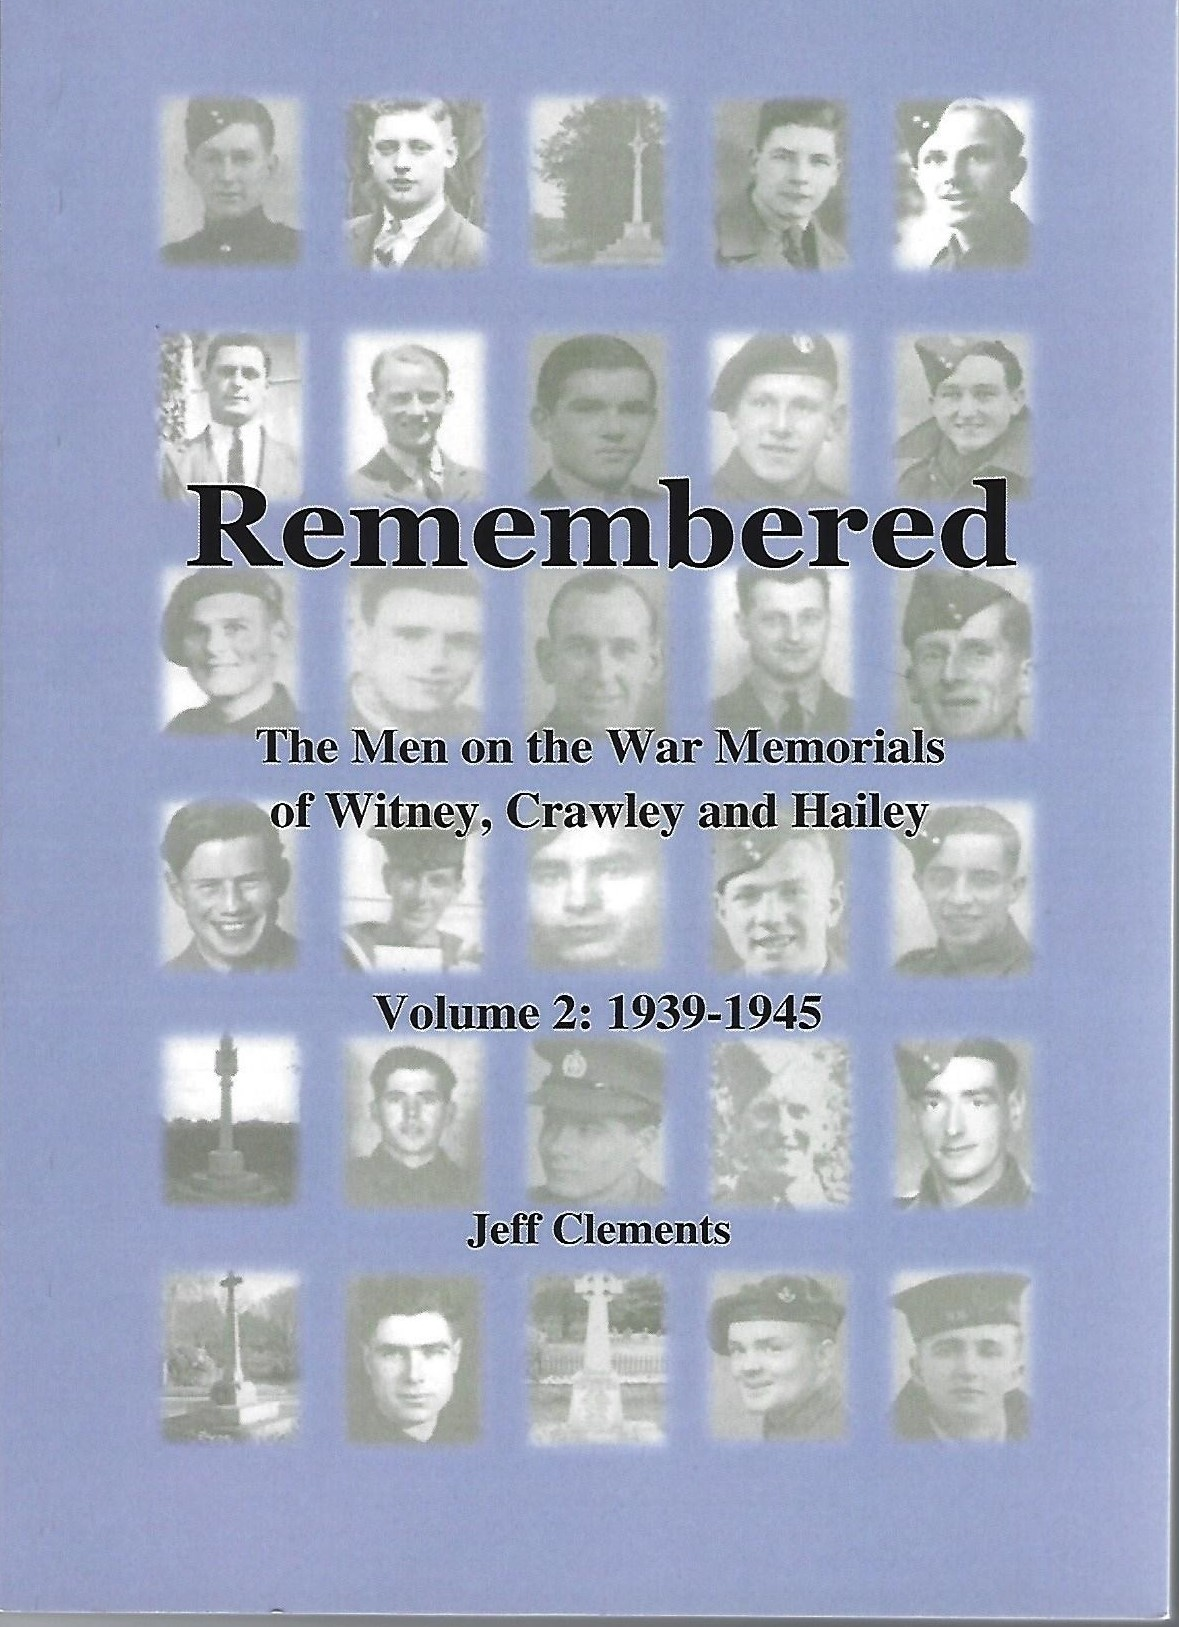 Front cover of book by Jeff Clements with images of servicemen who died